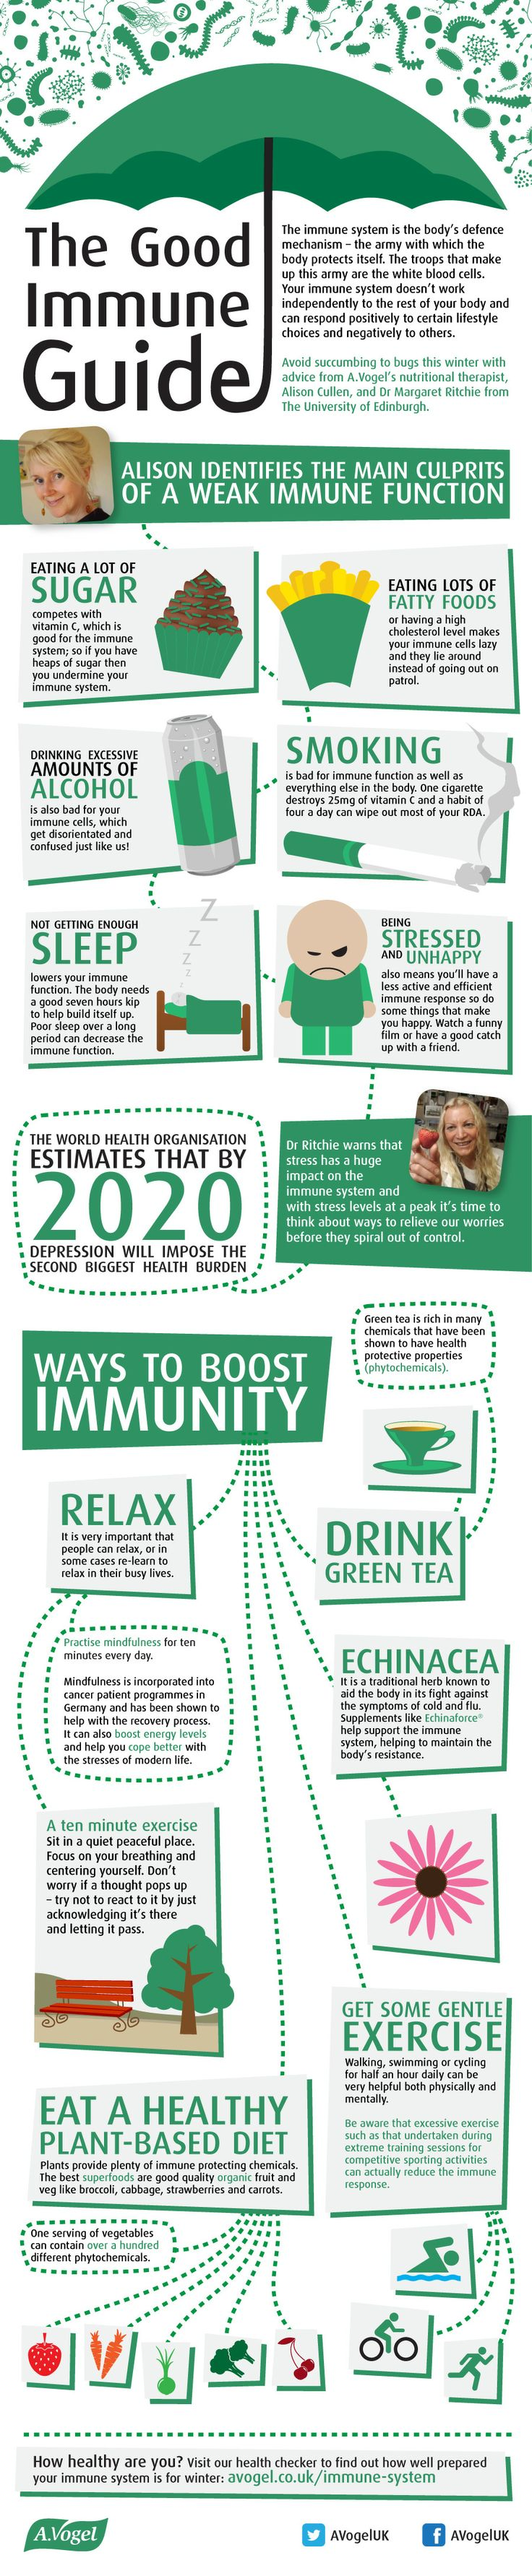 Check out our infographic for tips on how to keep your immune levels up!